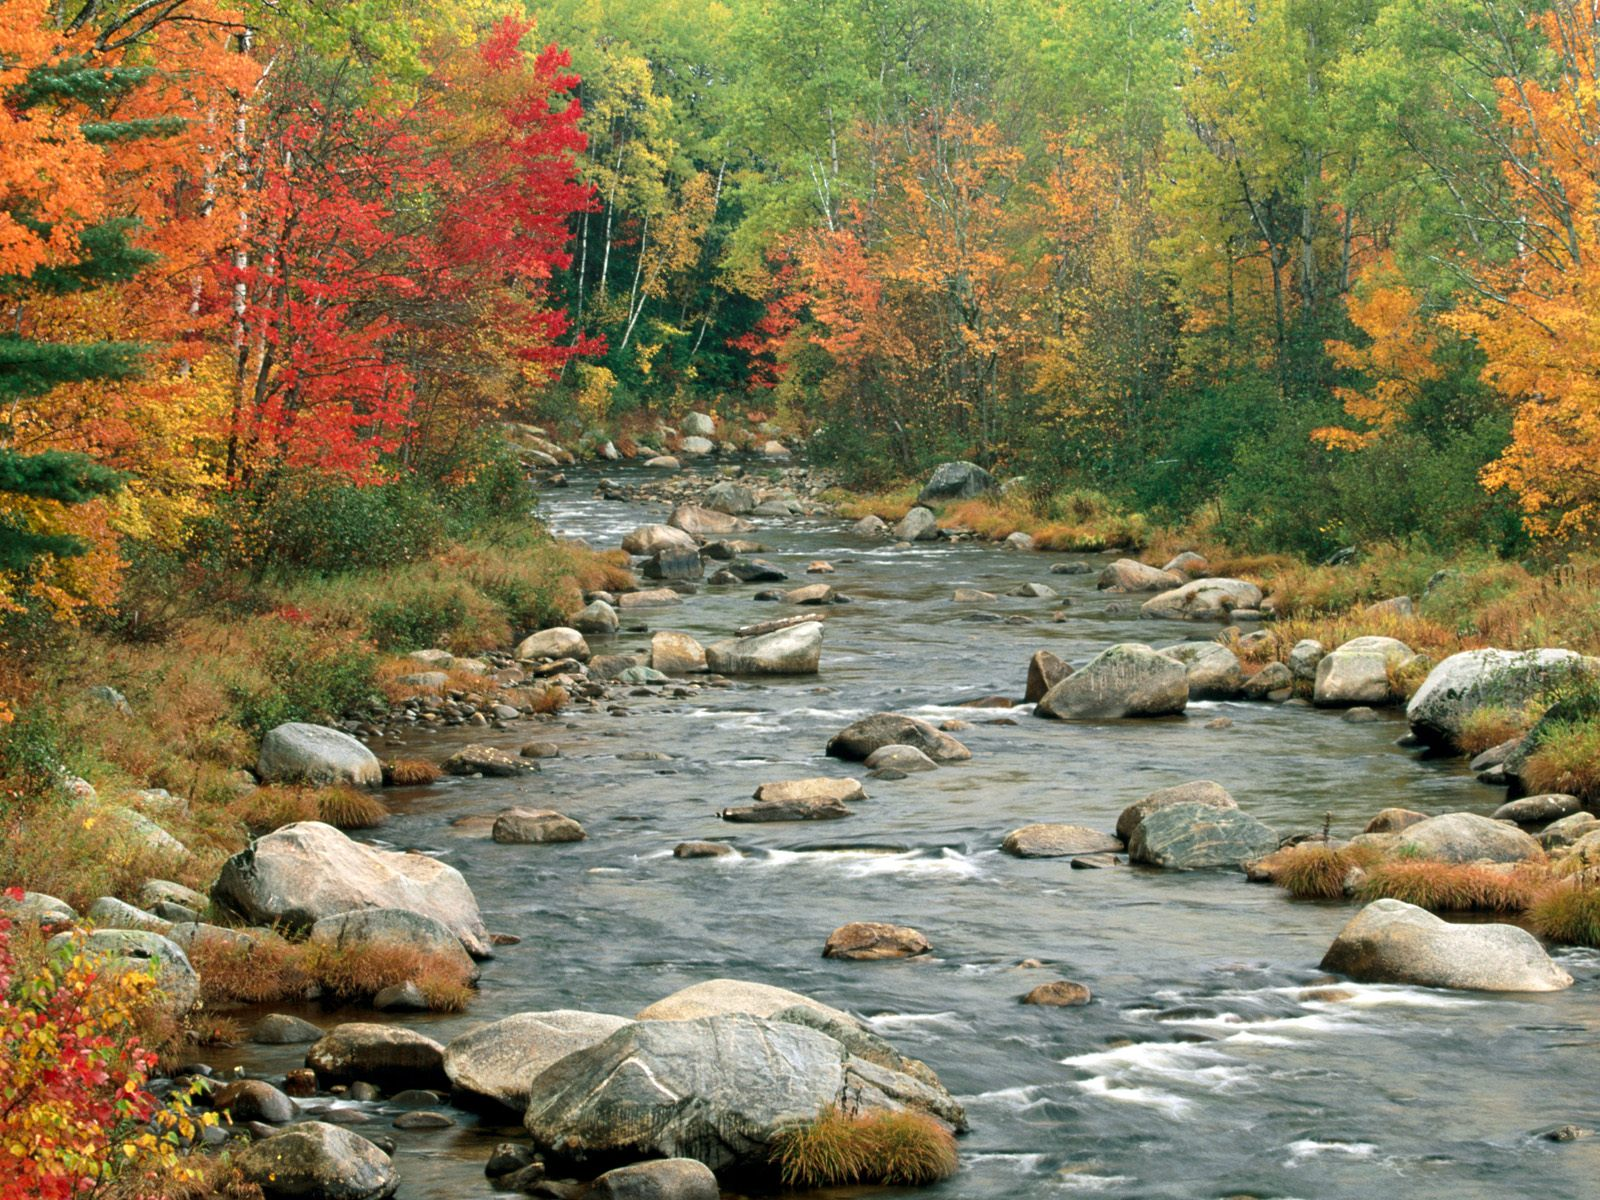 http://4.bp.blogspot.com/_yZcK2igoTw0/TAFEfiBuRyI/AAAAAAAAAAs/1XwLUxeXWzU/s1600/autumn_colors,_white_mountains,_new_hampshire.jpg